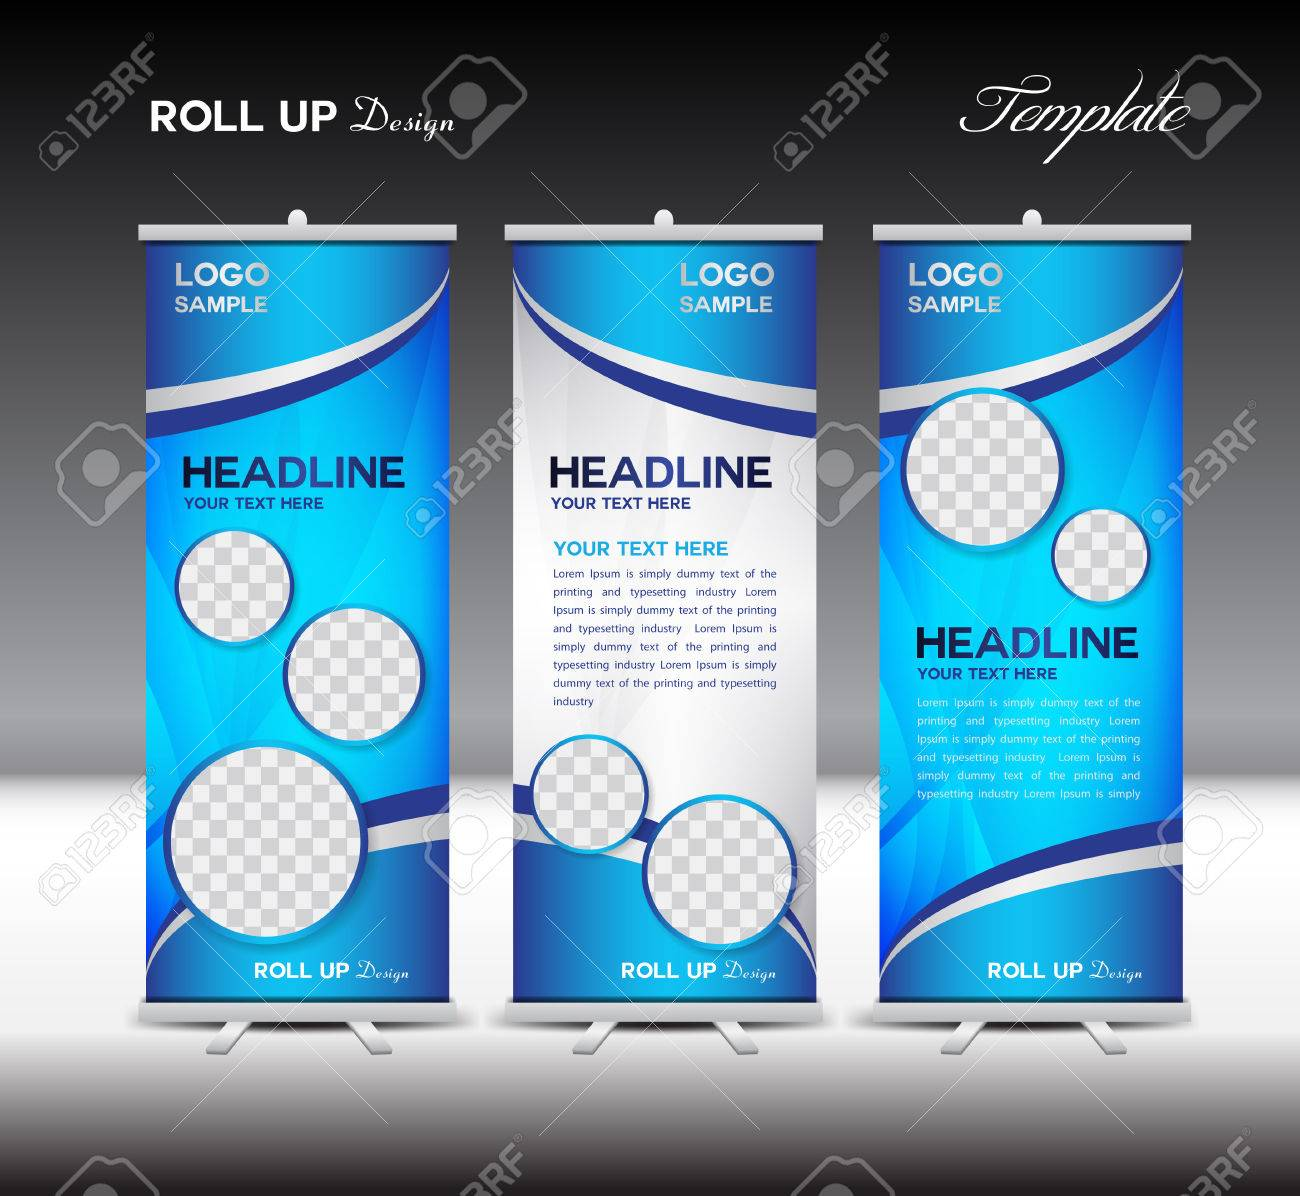 and blue Roll Up Banner template illustration,polygon background,banner design,standy template,roll up display,advertisement,Roll up banner stand design,blue background - 52956508